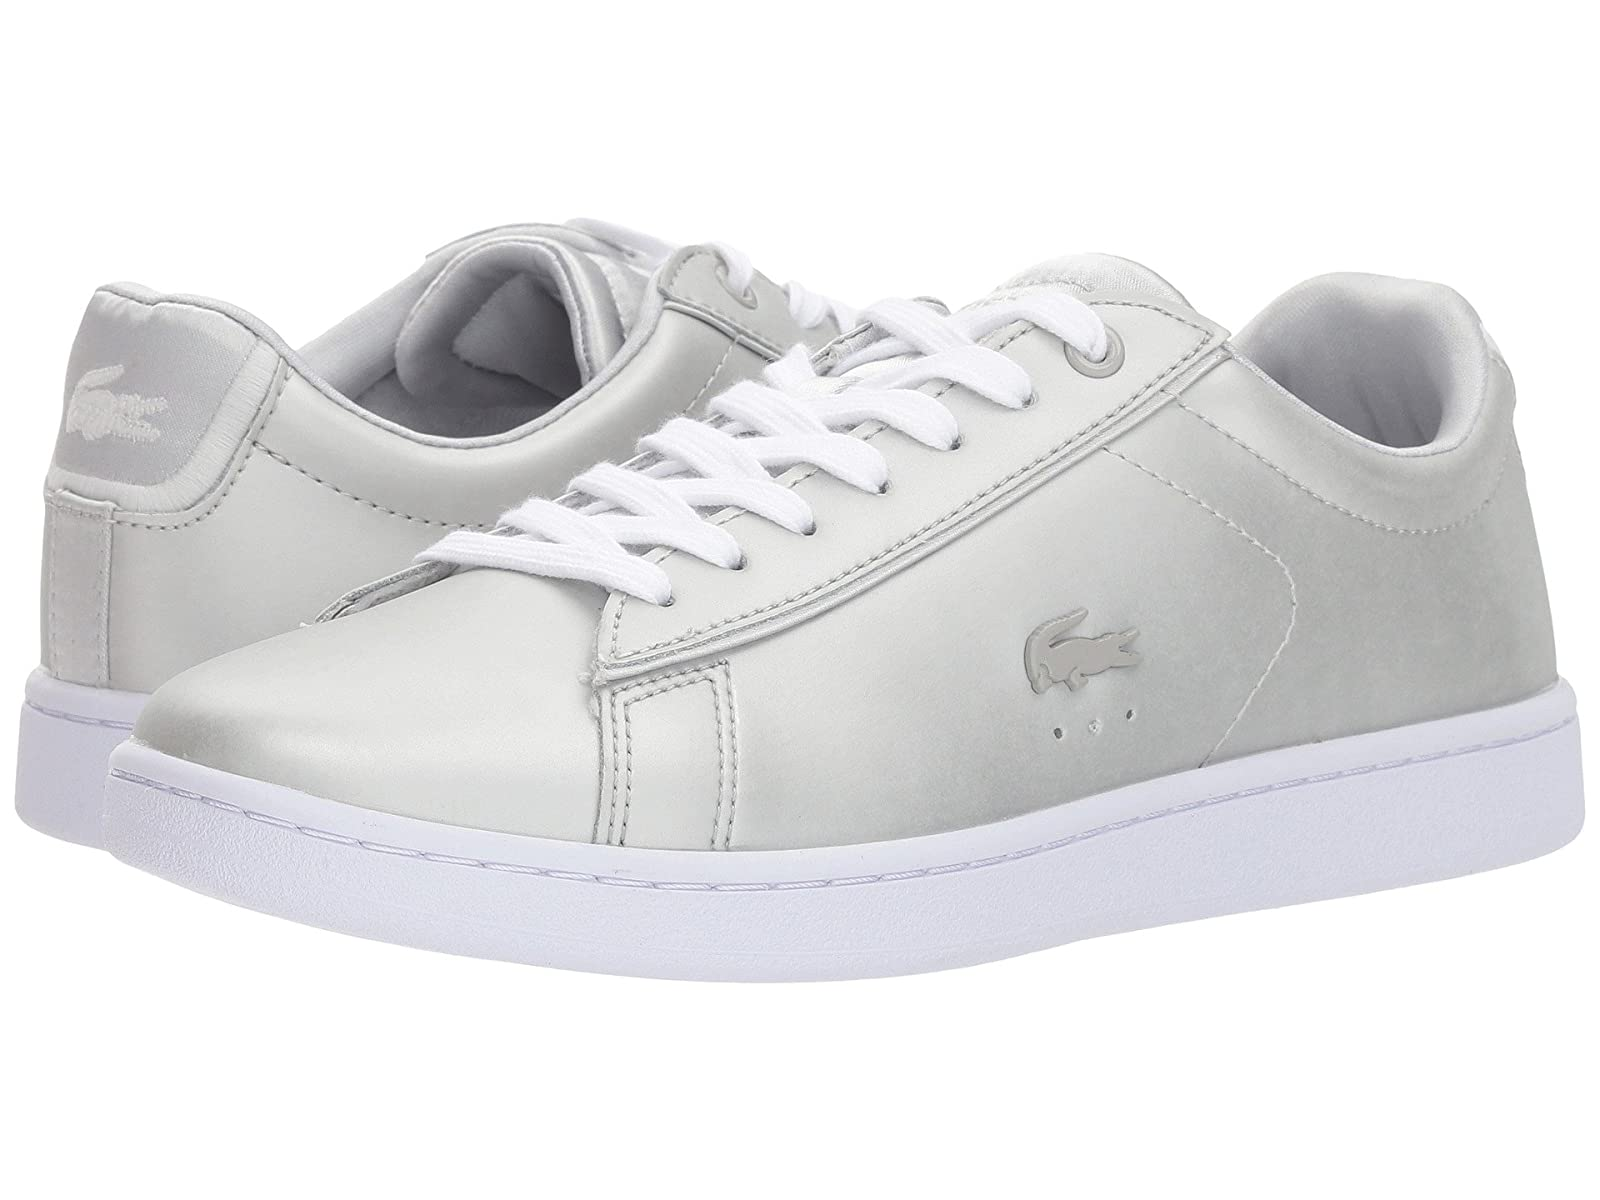 Lacoste Carnaby Evo 118 1Cheap and distinctive eye-catching shoes